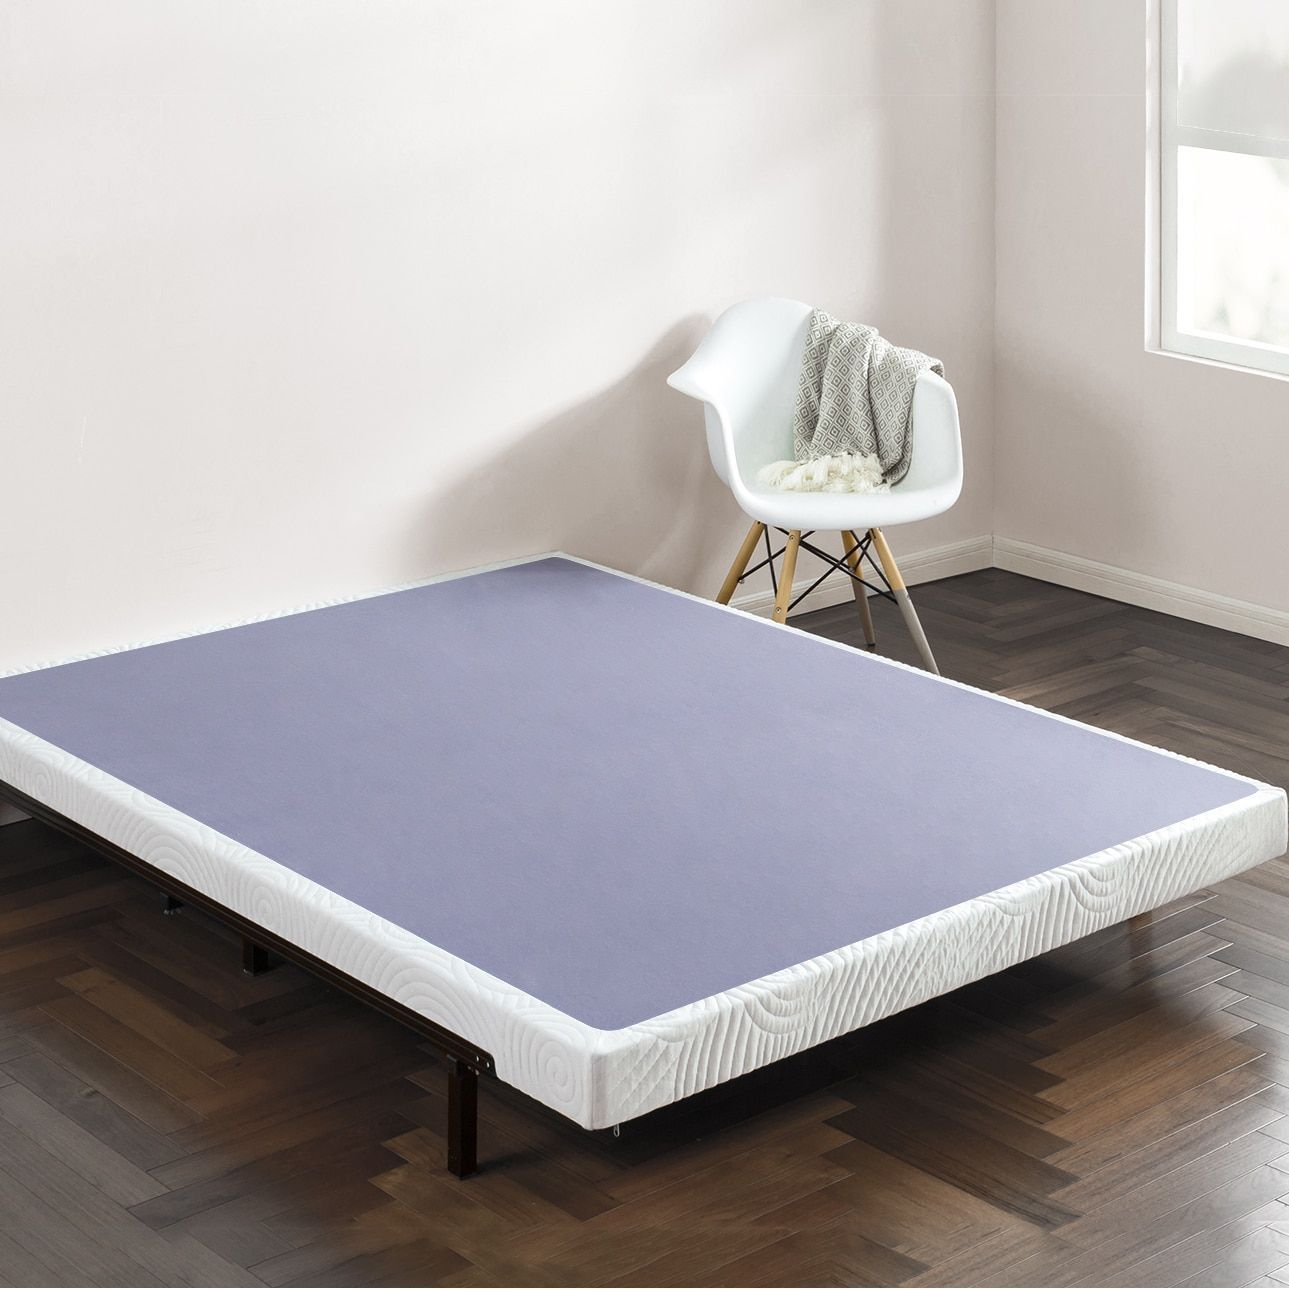 Priage 4 Inch Smart Box Spring Mattress Foundation